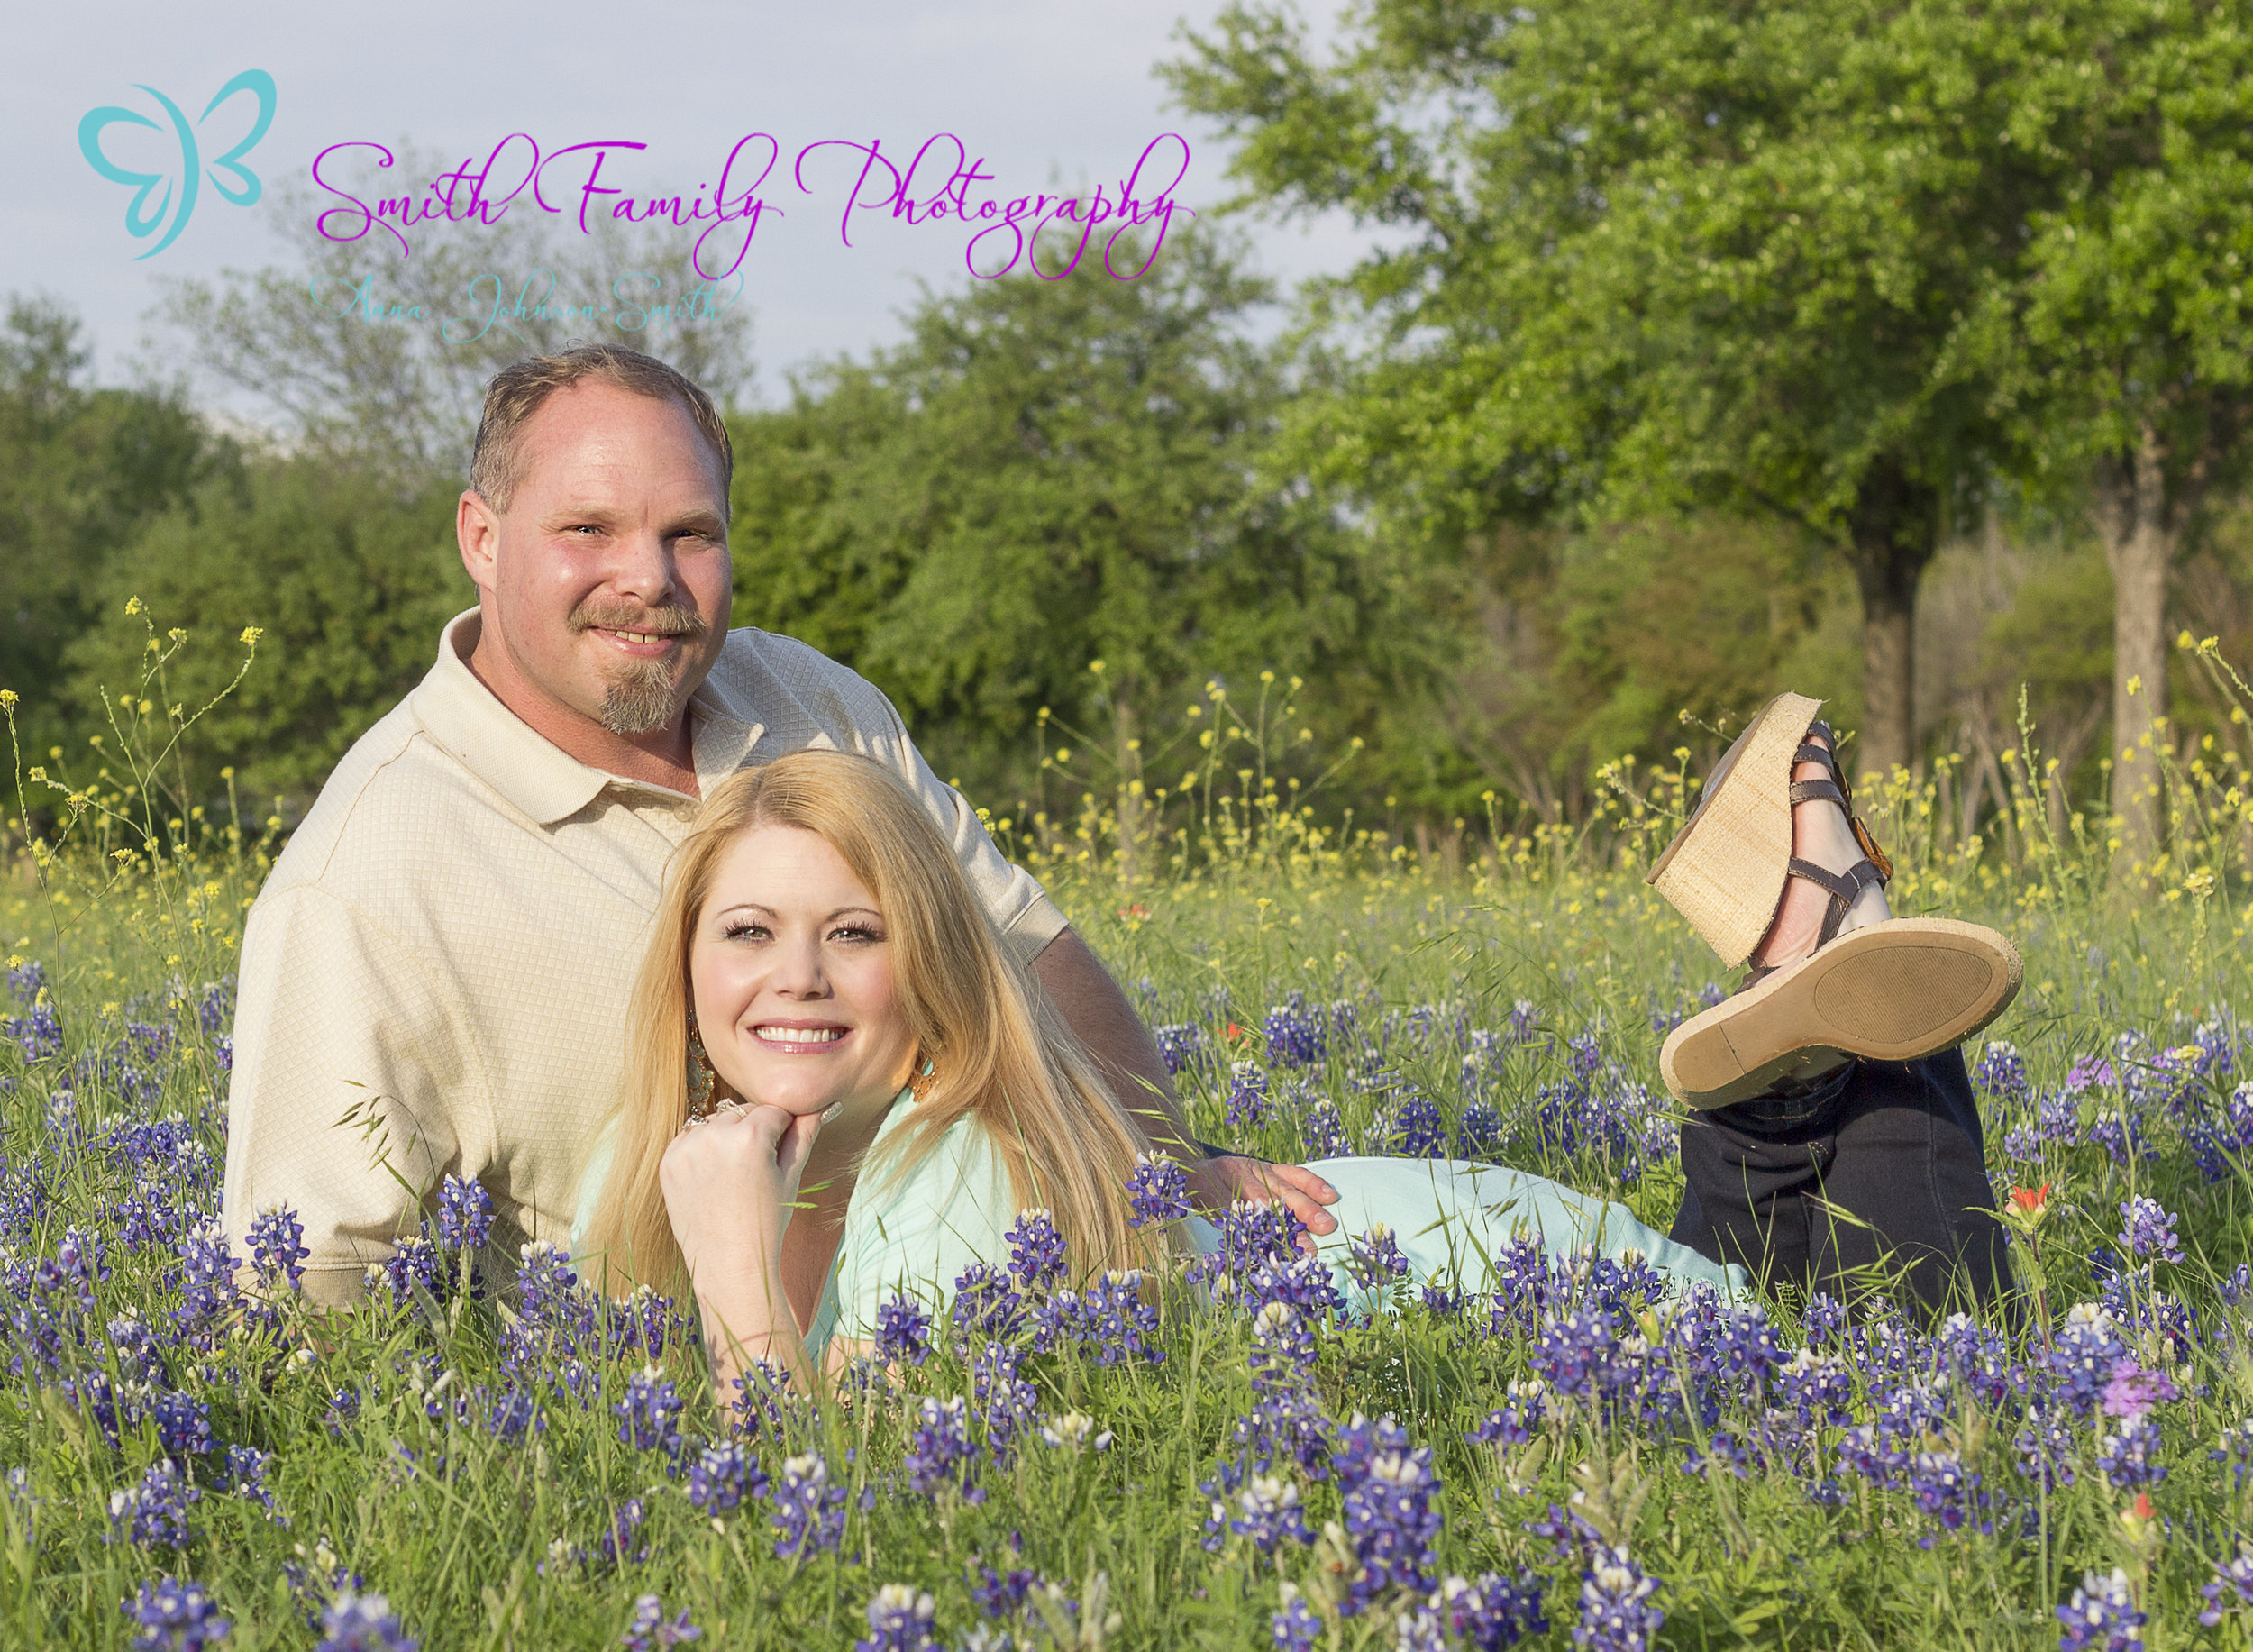 2015 - One of my favorite bluebonnet photos!